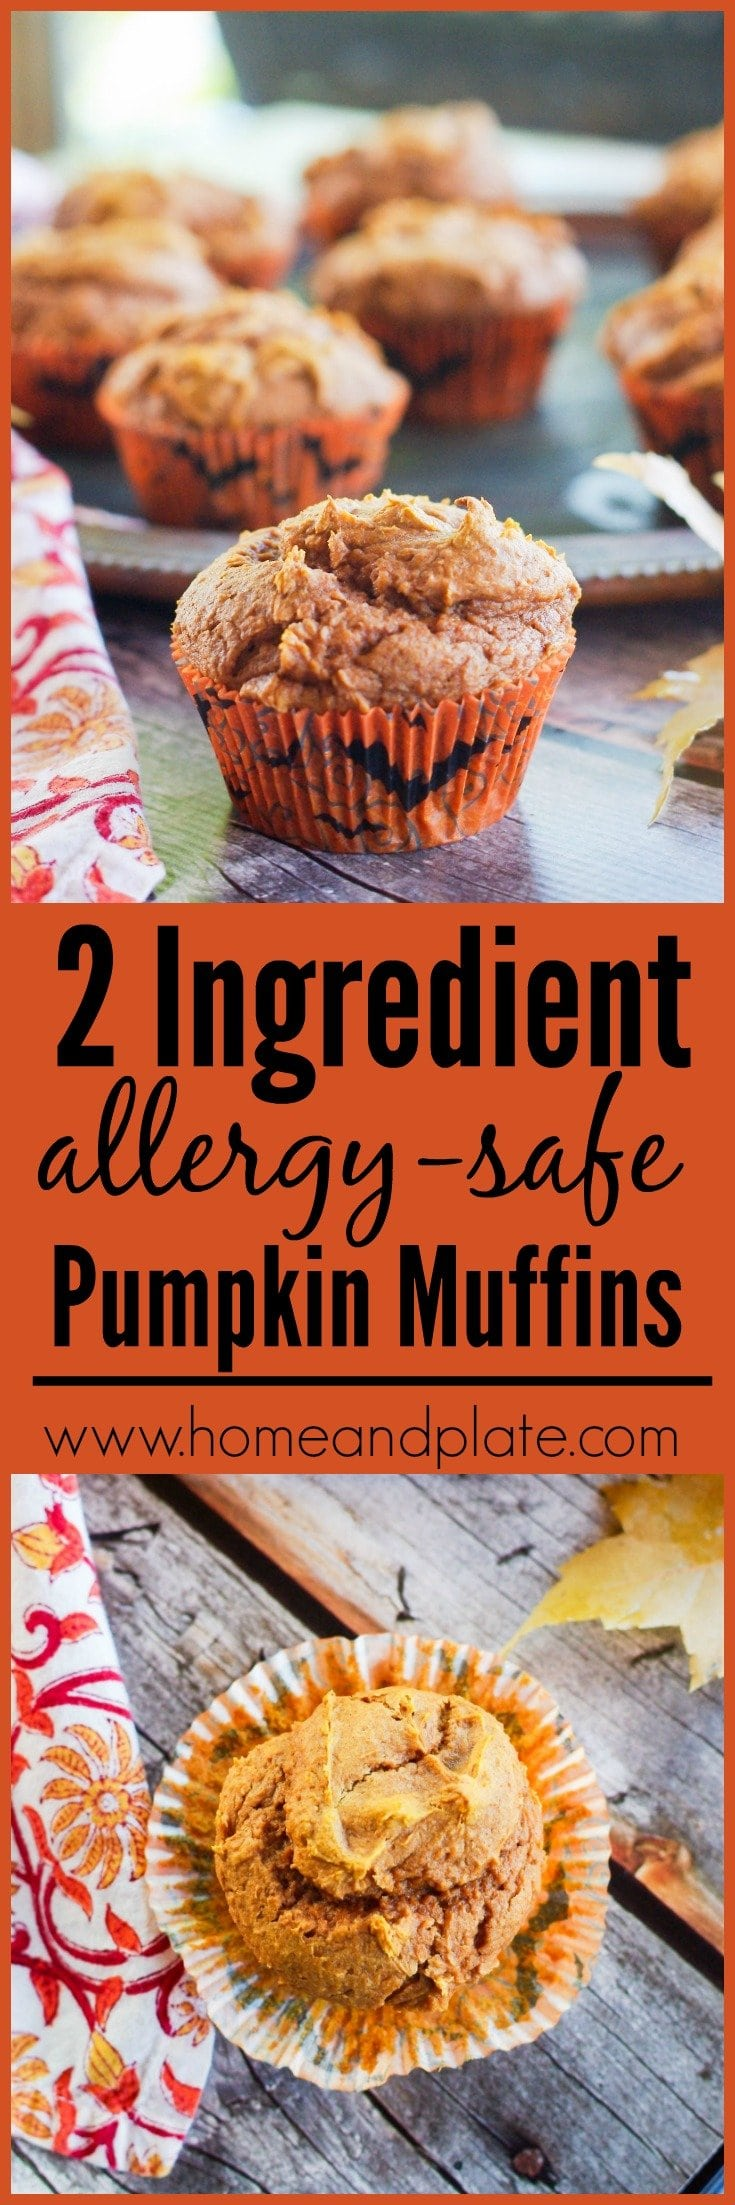 Two Ingredient Allergy Safe Pumpkin Muffins | www.homeandplate.com | Be the hero of your child